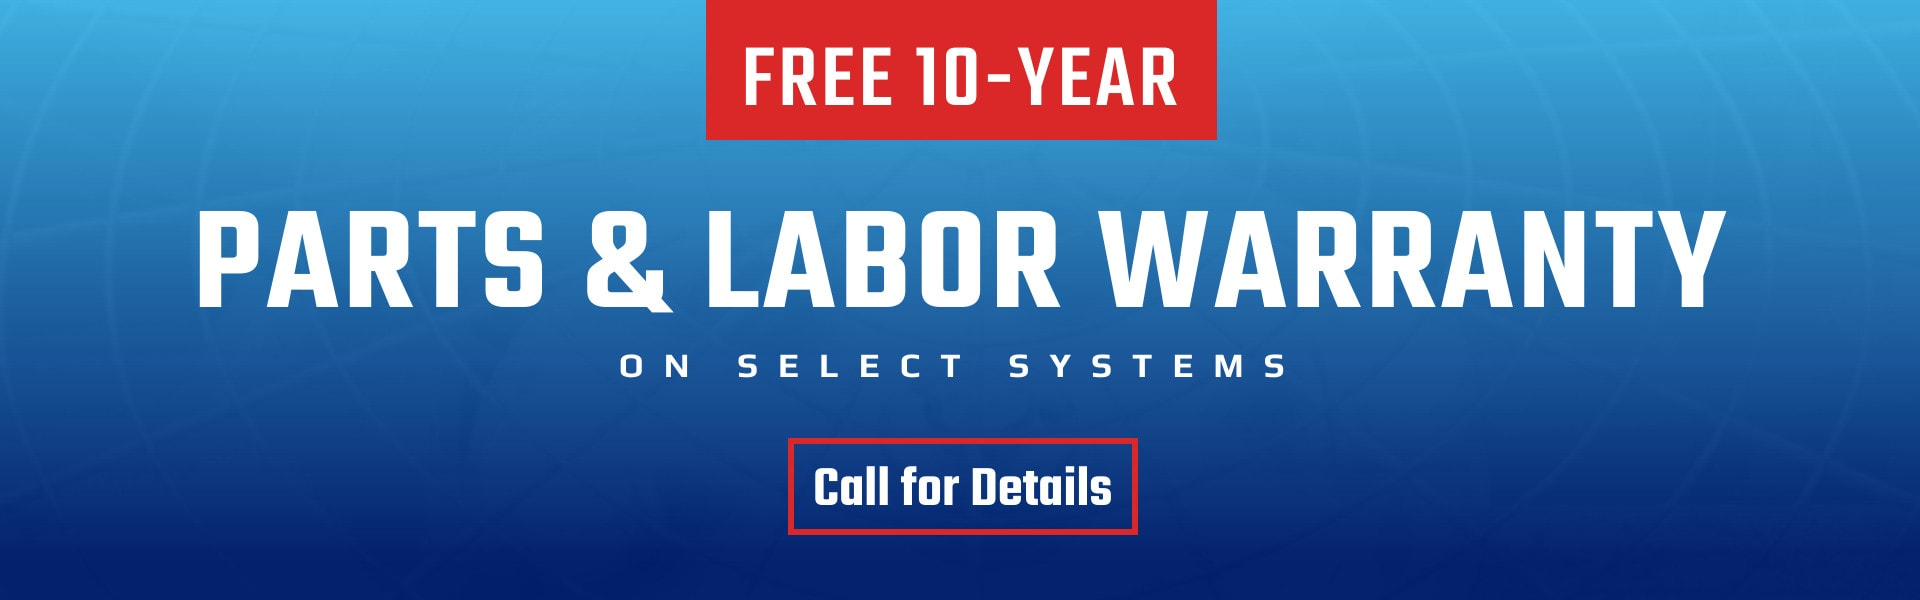 Free 10-Year Parts and Labor Warranty